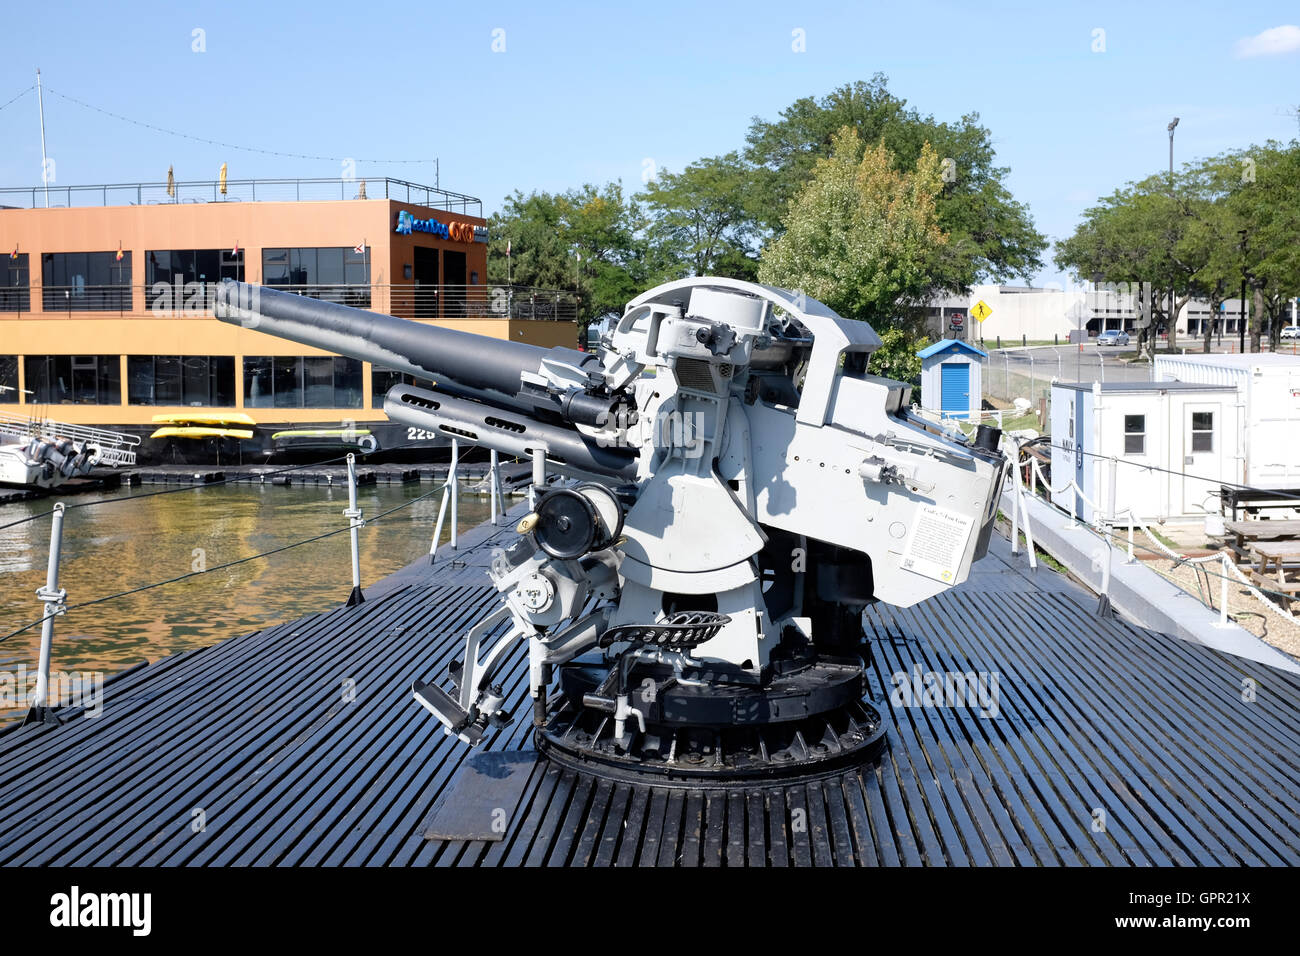 Uss Cleveland Stock Photos & Uss Cleveland Stock Images - Alamy